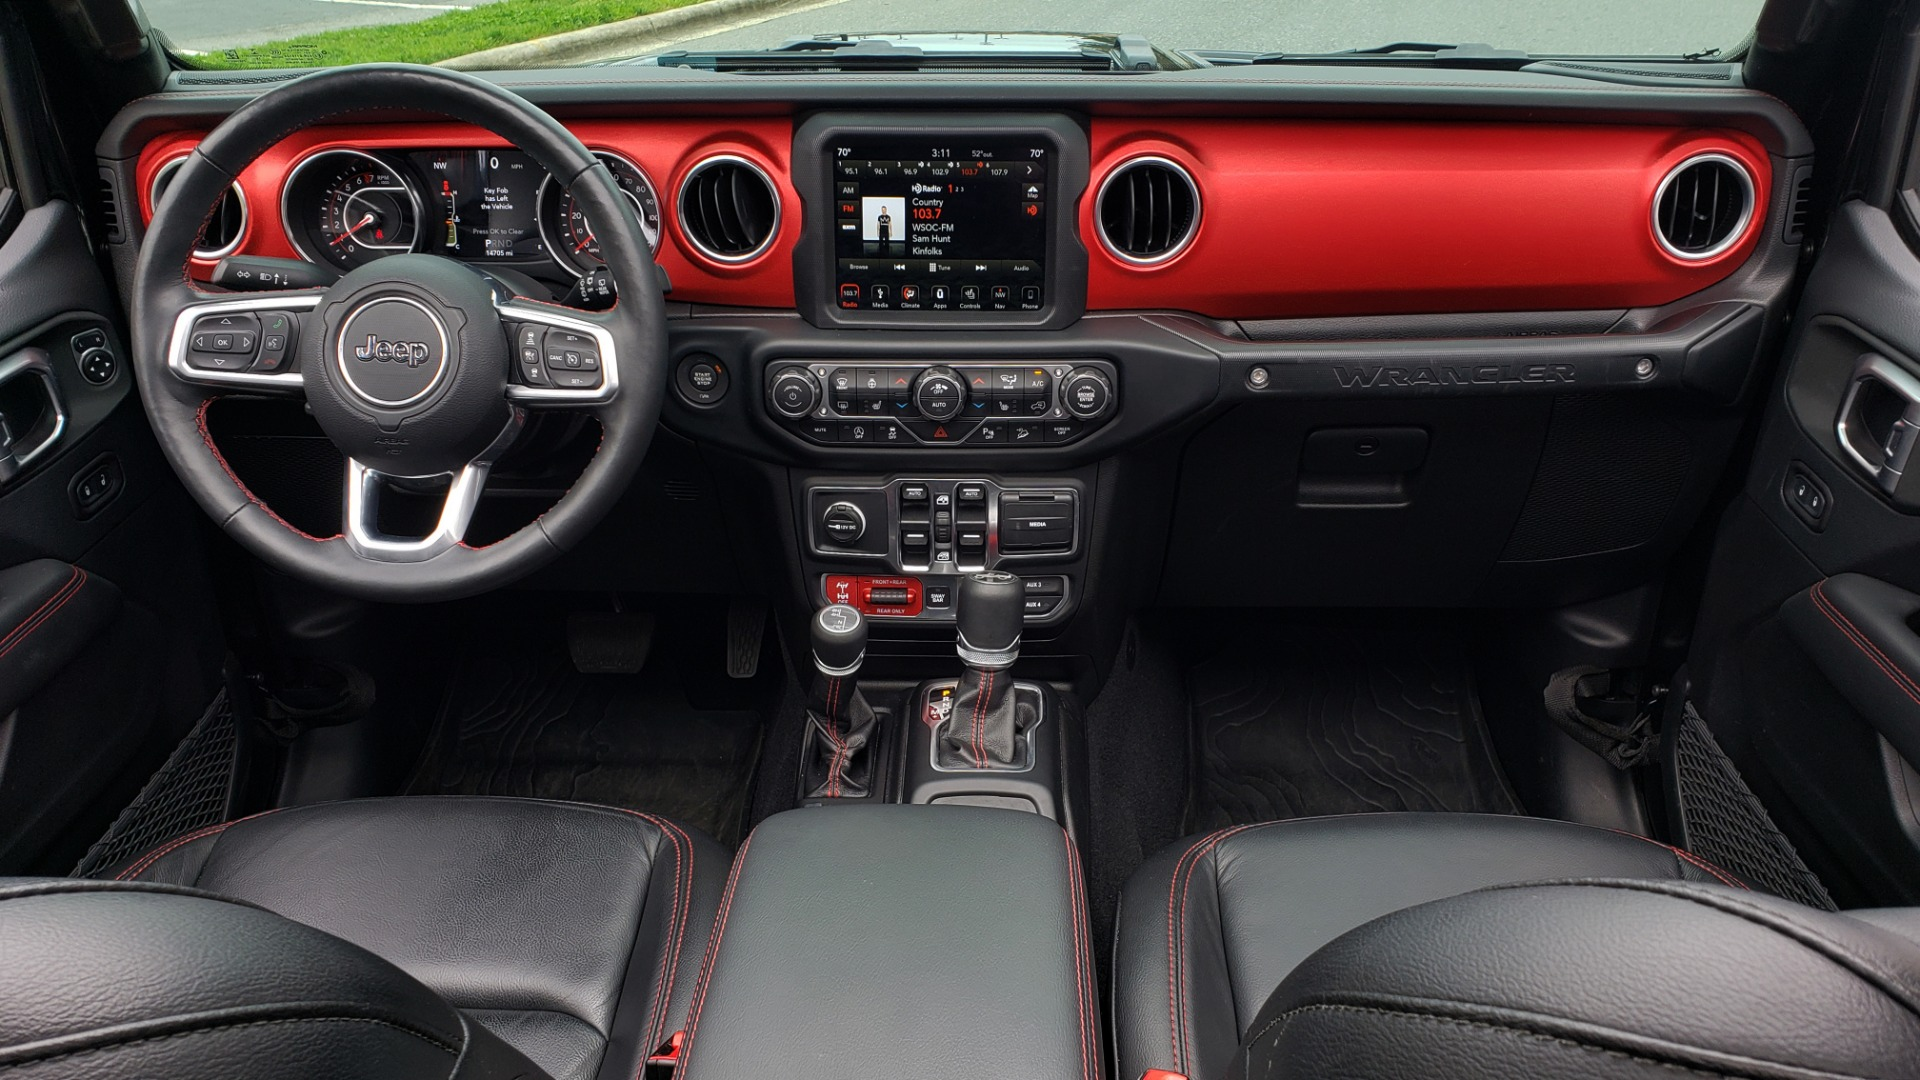 Used 2019 Jeep WRANGLER UNLIMITED RUBICON 4WD / V6 / 8-SPD AUTO / NAV / PWR TOP / REARVIEW for sale Sold at Formula Imports in Charlotte NC 28227 105